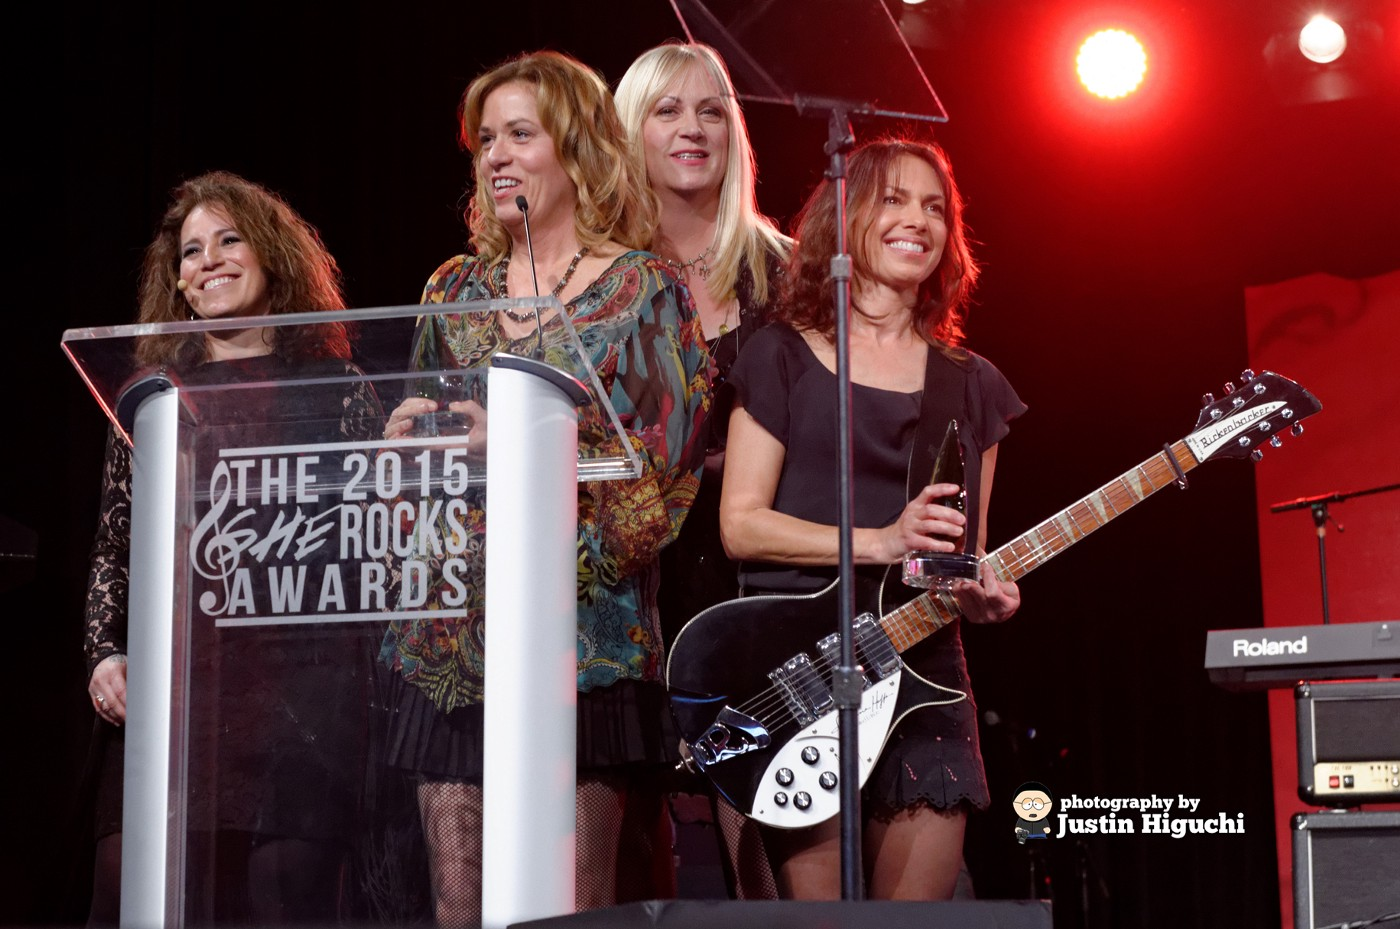 """The Bangles at the WiMN """"She Rocks"""" Awards at the Winter NAMM Show in Anaheim California on Friday January 23rd, 2015."""